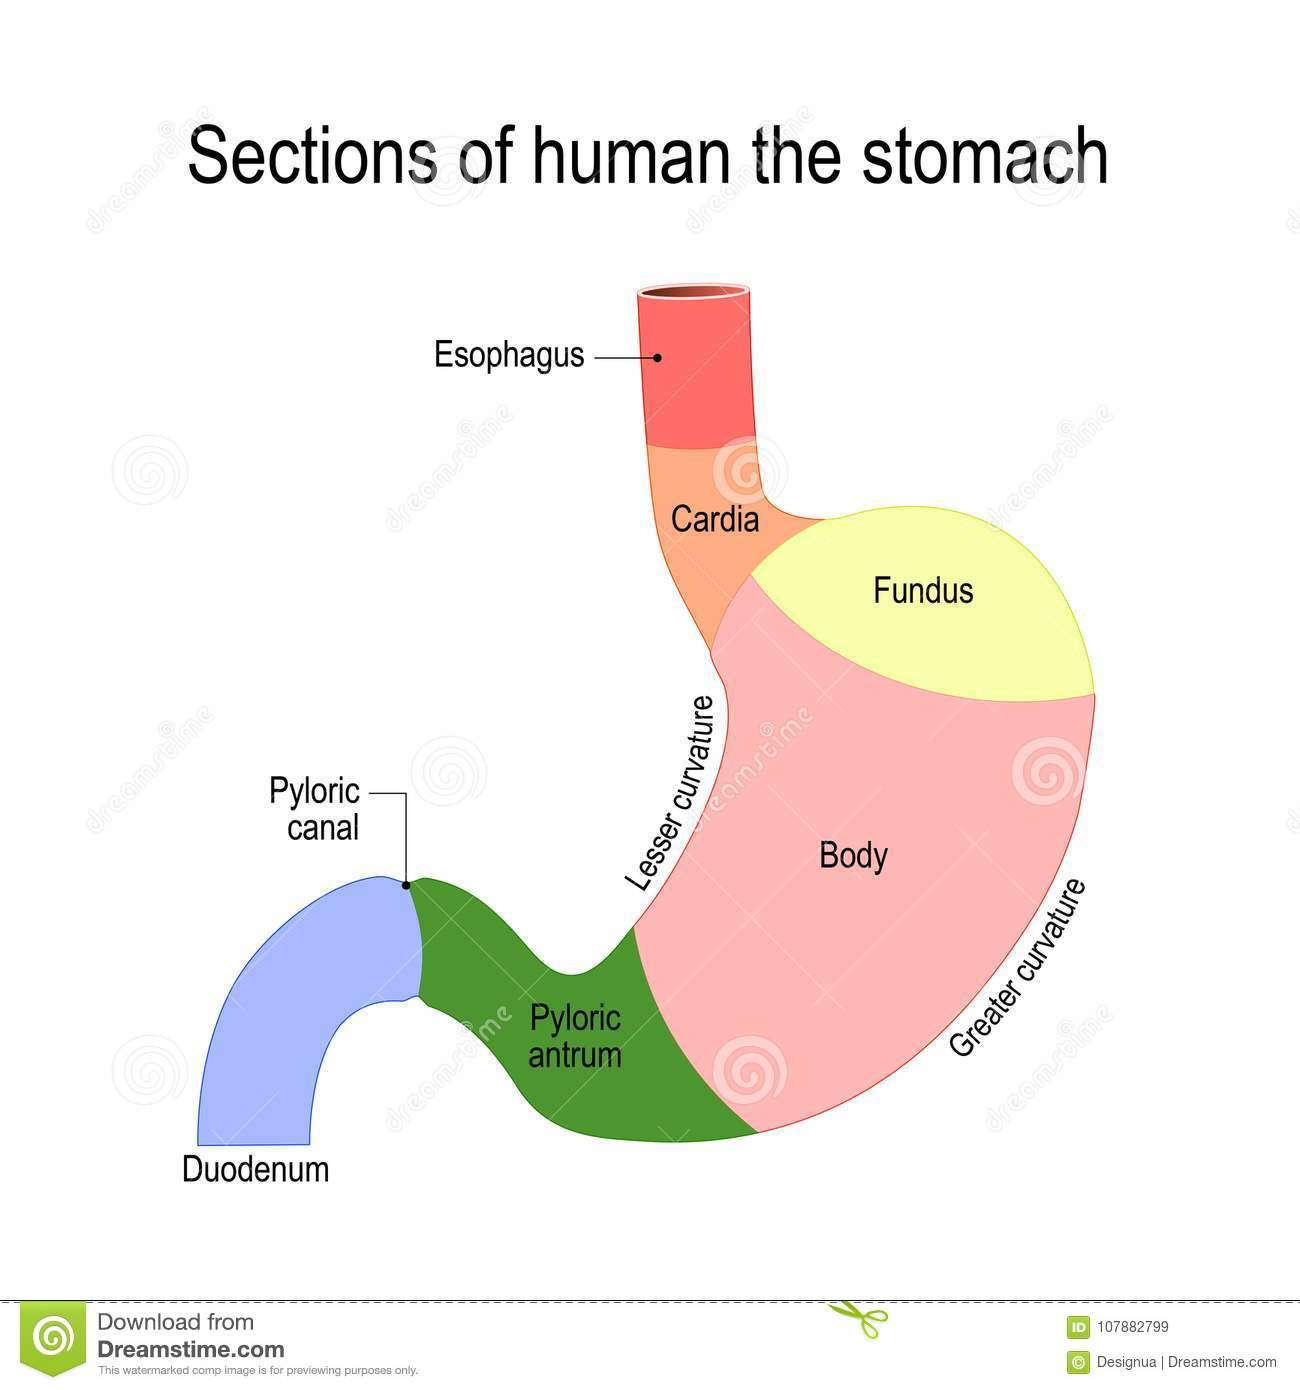 hight resolution of sections of the stomach parts and regions duodenum esophagus sphincter and body stomach human anatomy flat illustration for medical science